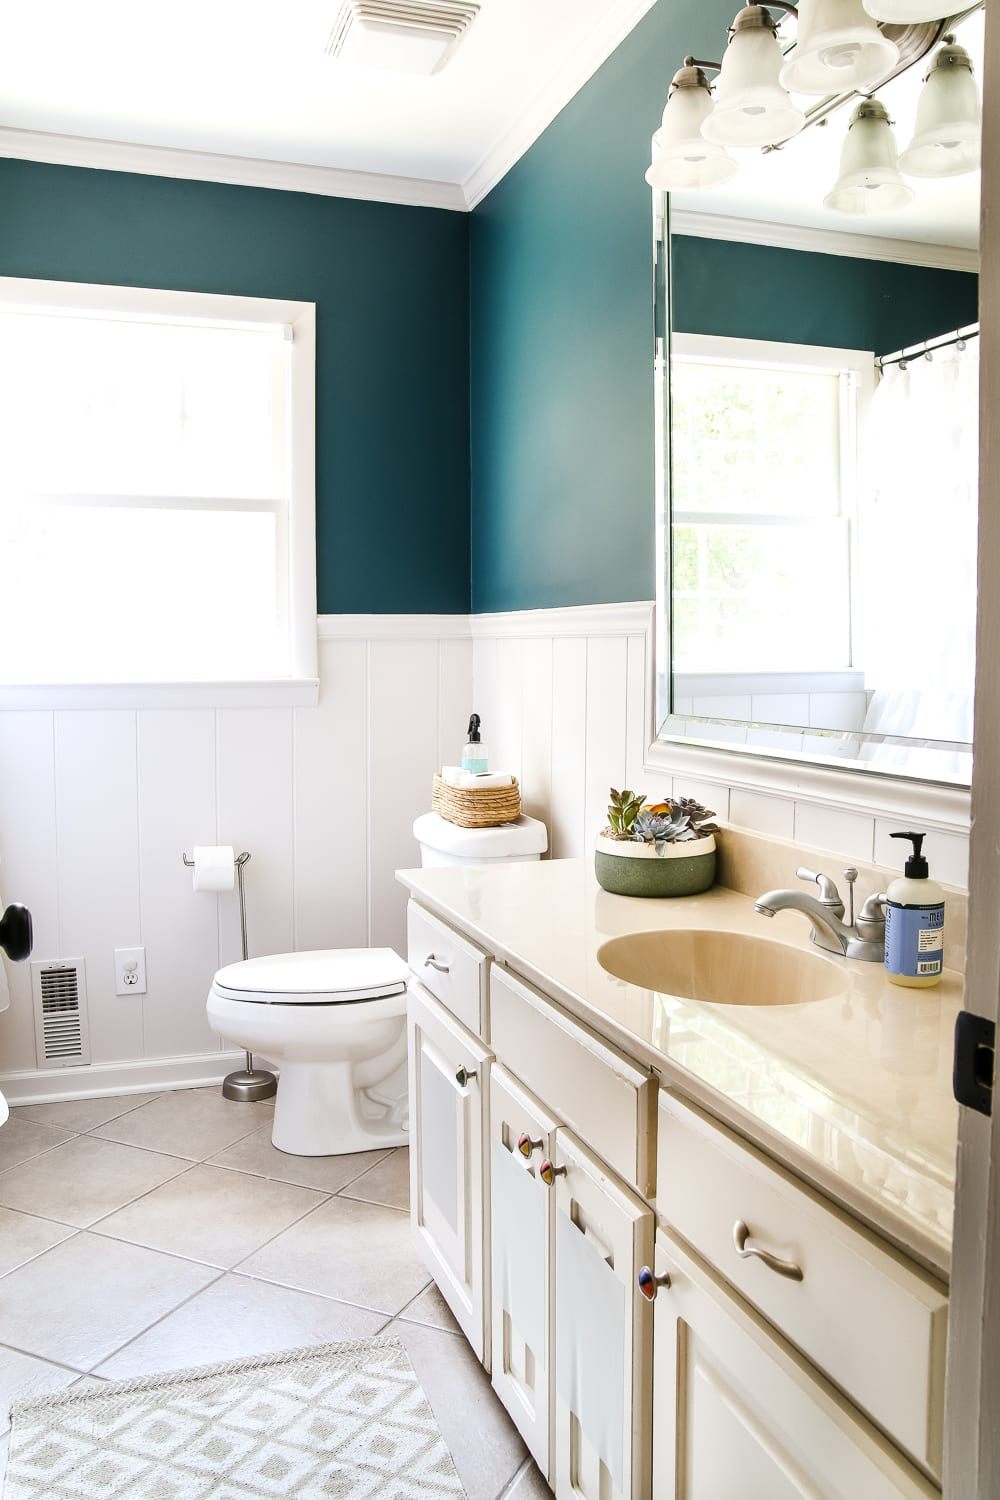 Teal painted bathroom makeover bless 39 er house - Bathroom color schemes brown and teal ...